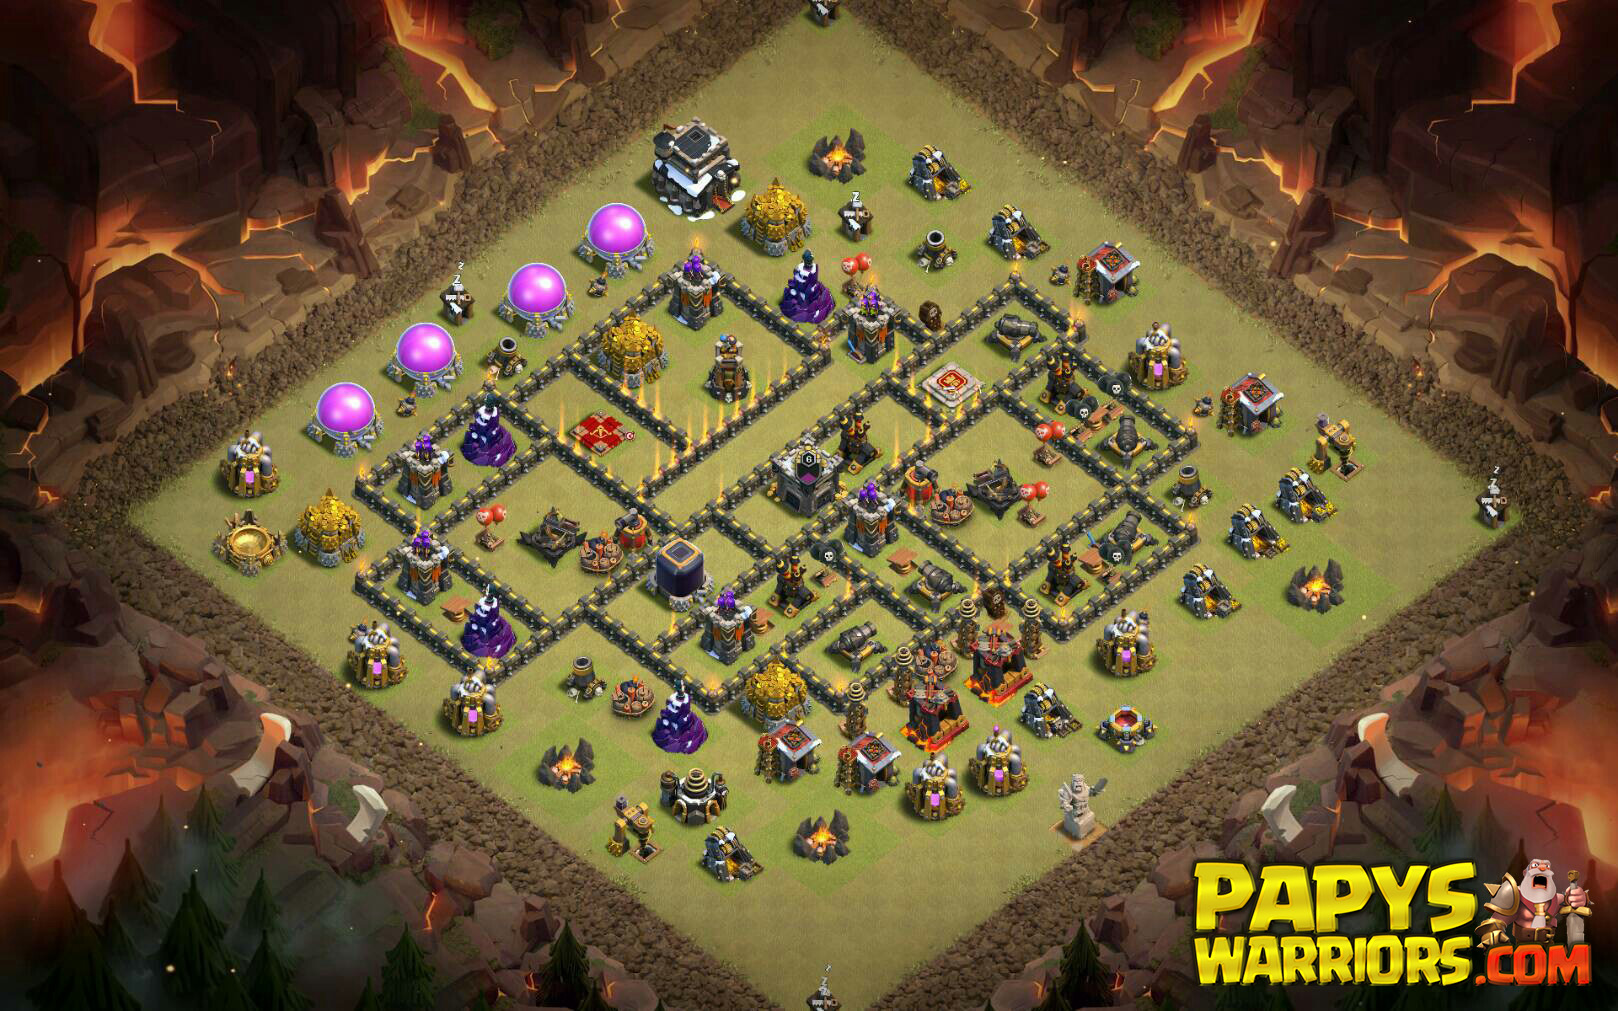 WAR BASE TH9 PAPYS WARRIORS 12